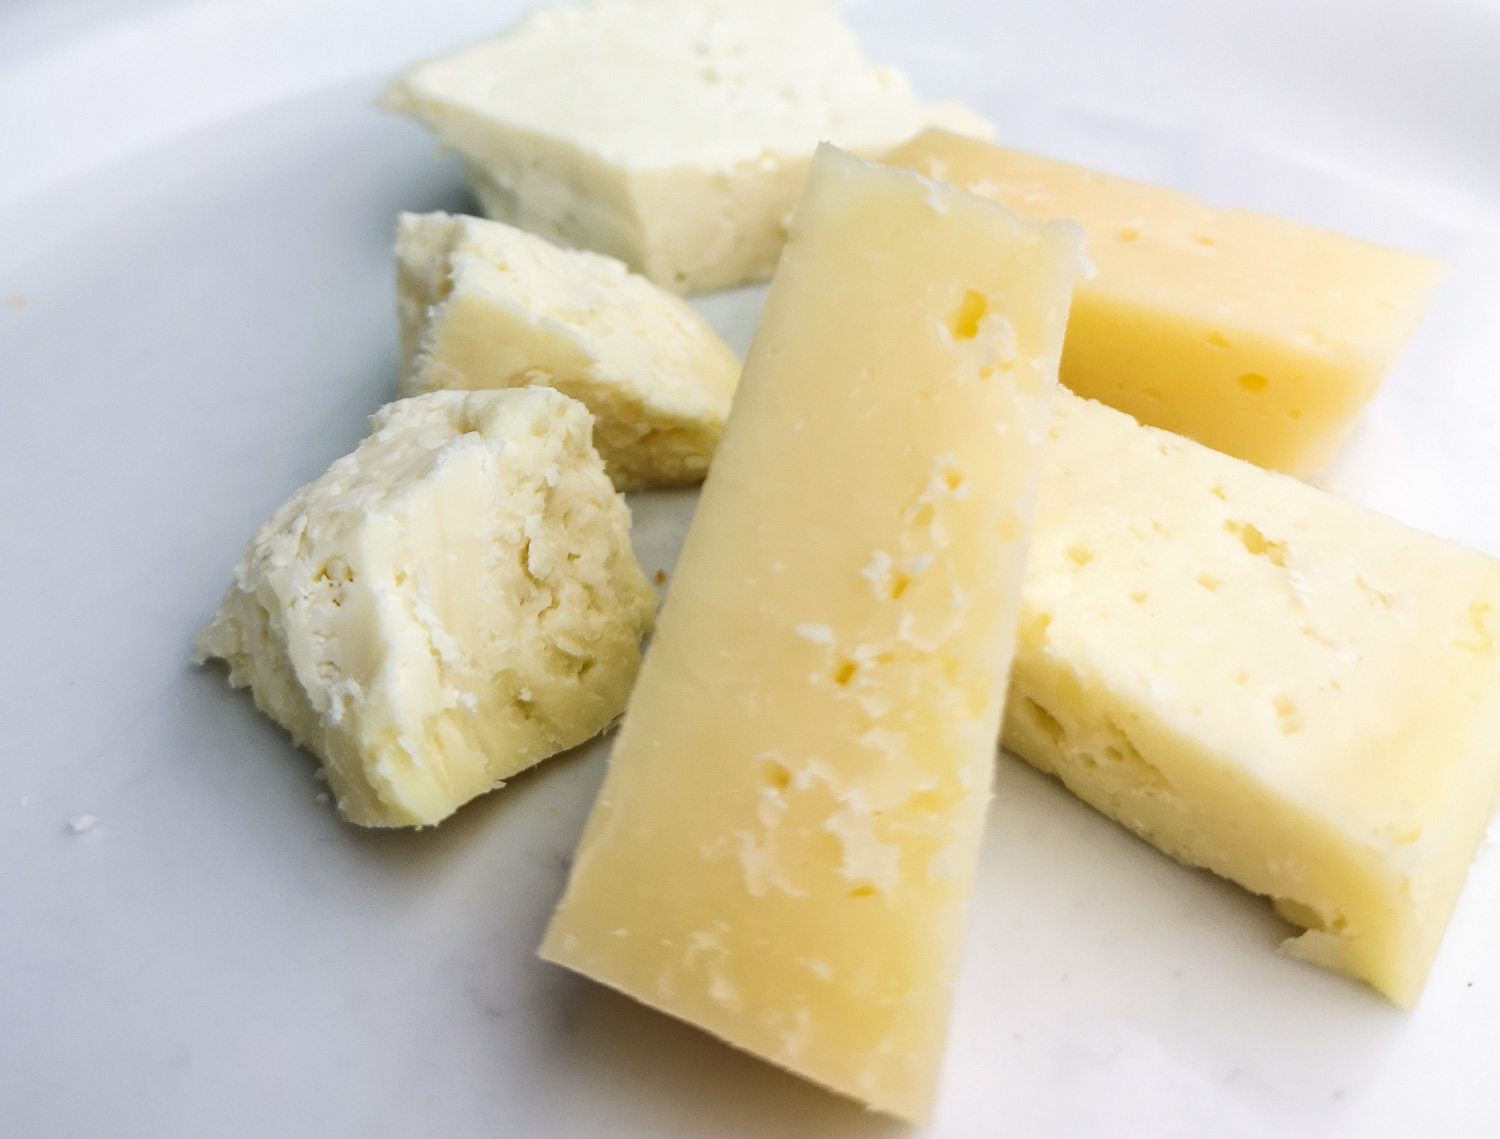 A variety of cheese from Naxos